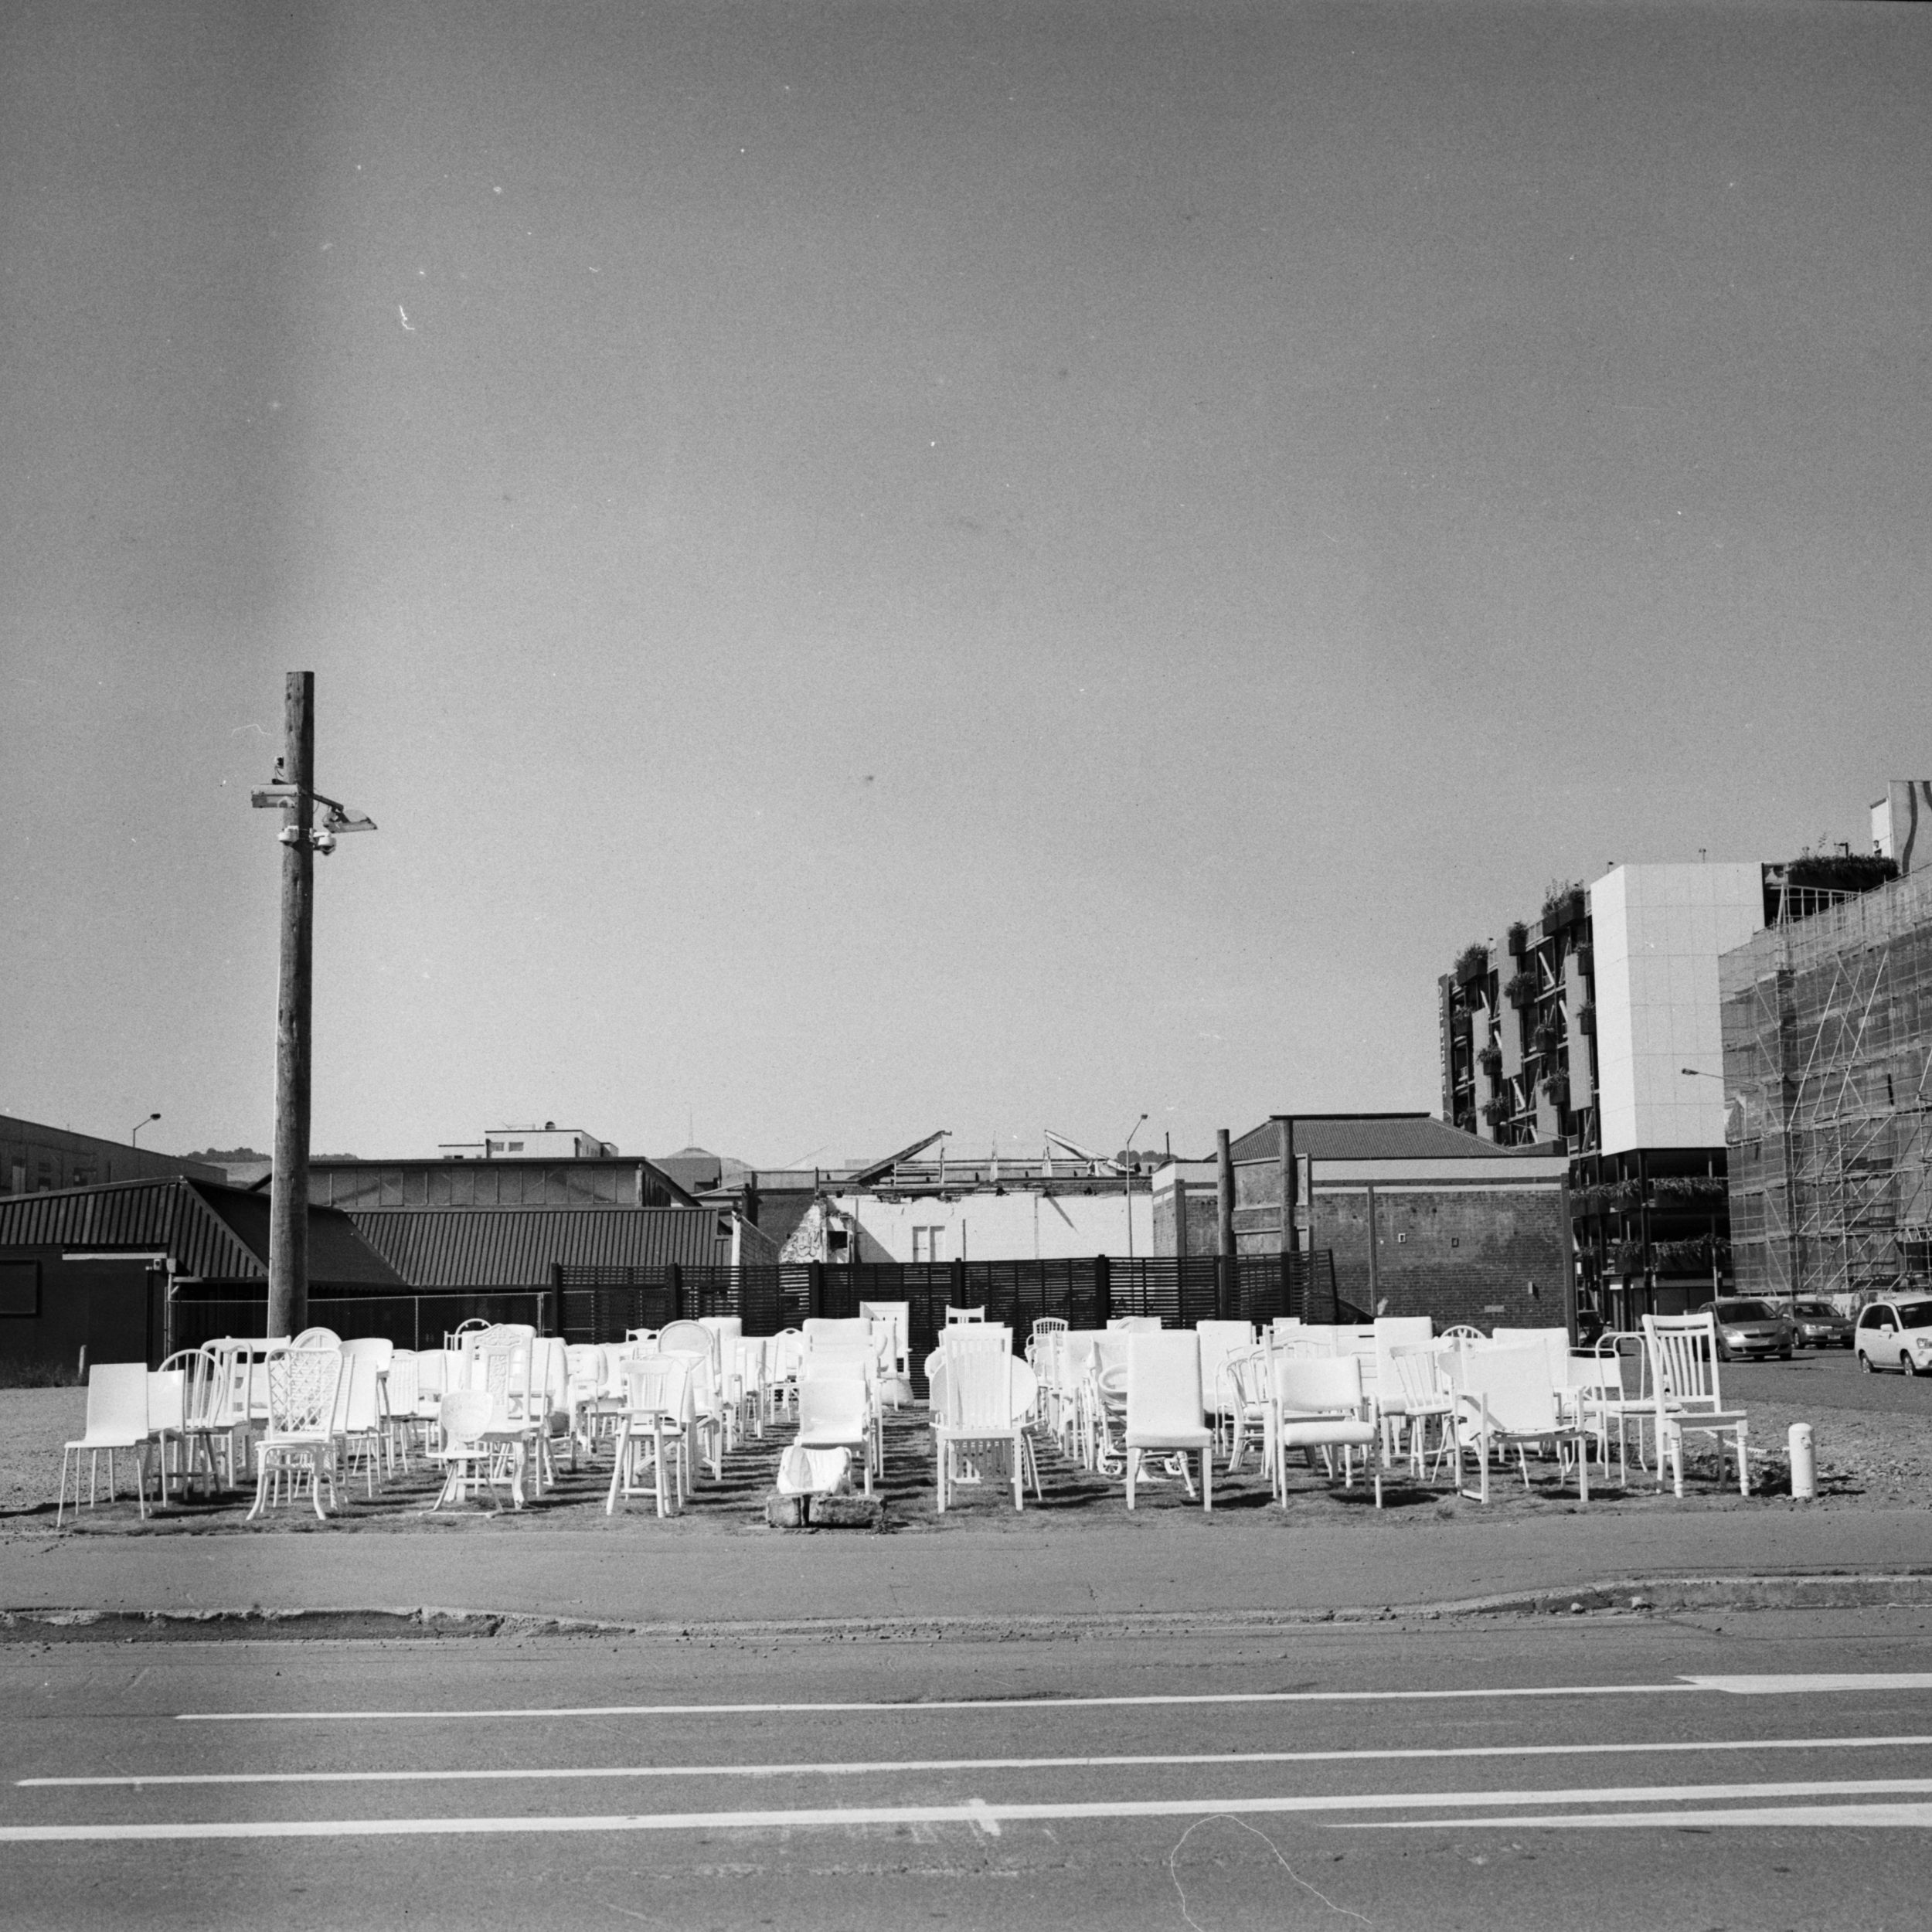 White Chairs memorial (Pic: Hunter Benbow)